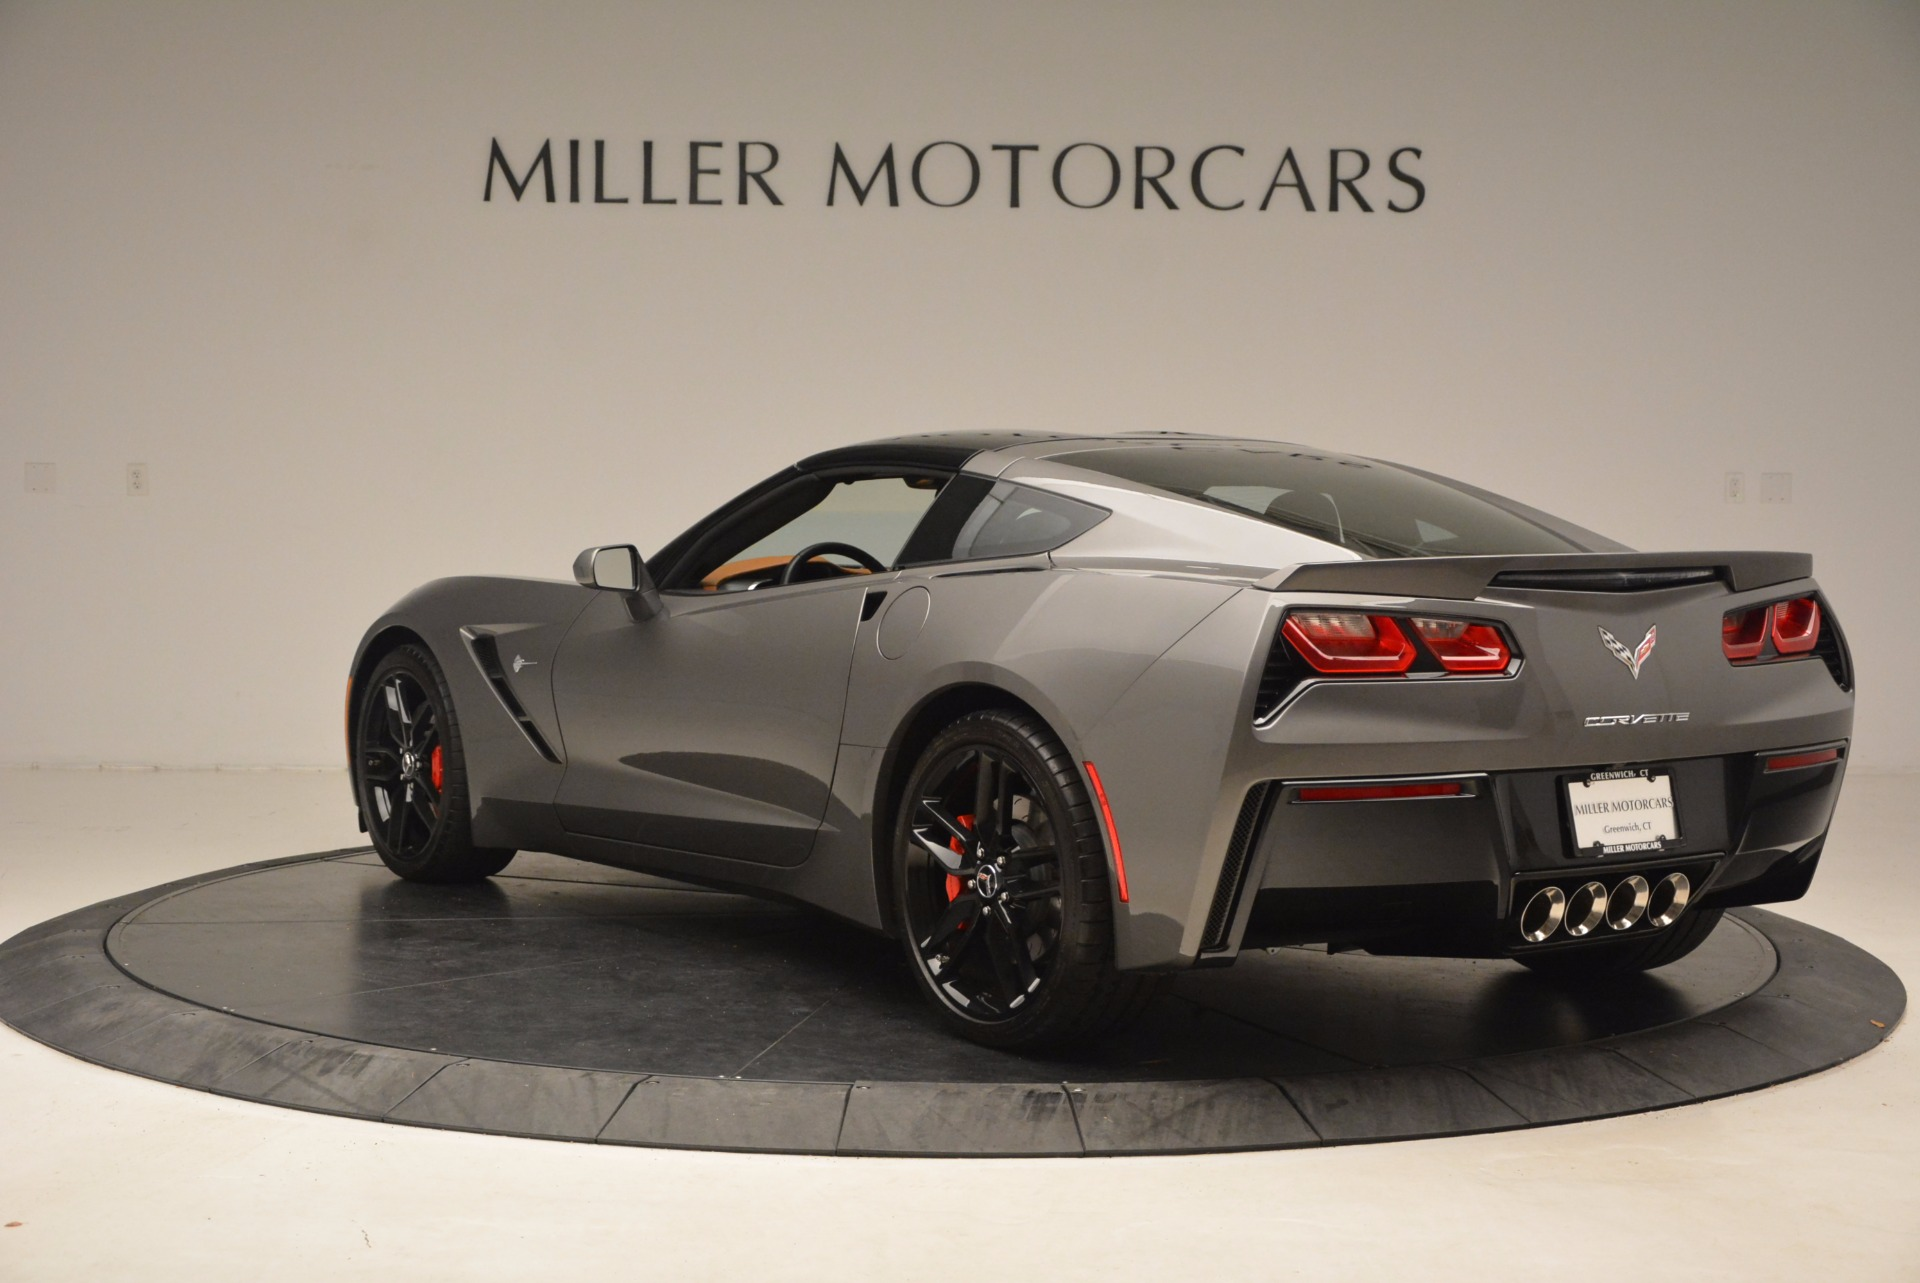 Used 2015 Chevrolet Corvette Stingray Z51 For Sale In Greenwich, CT 1589_p17